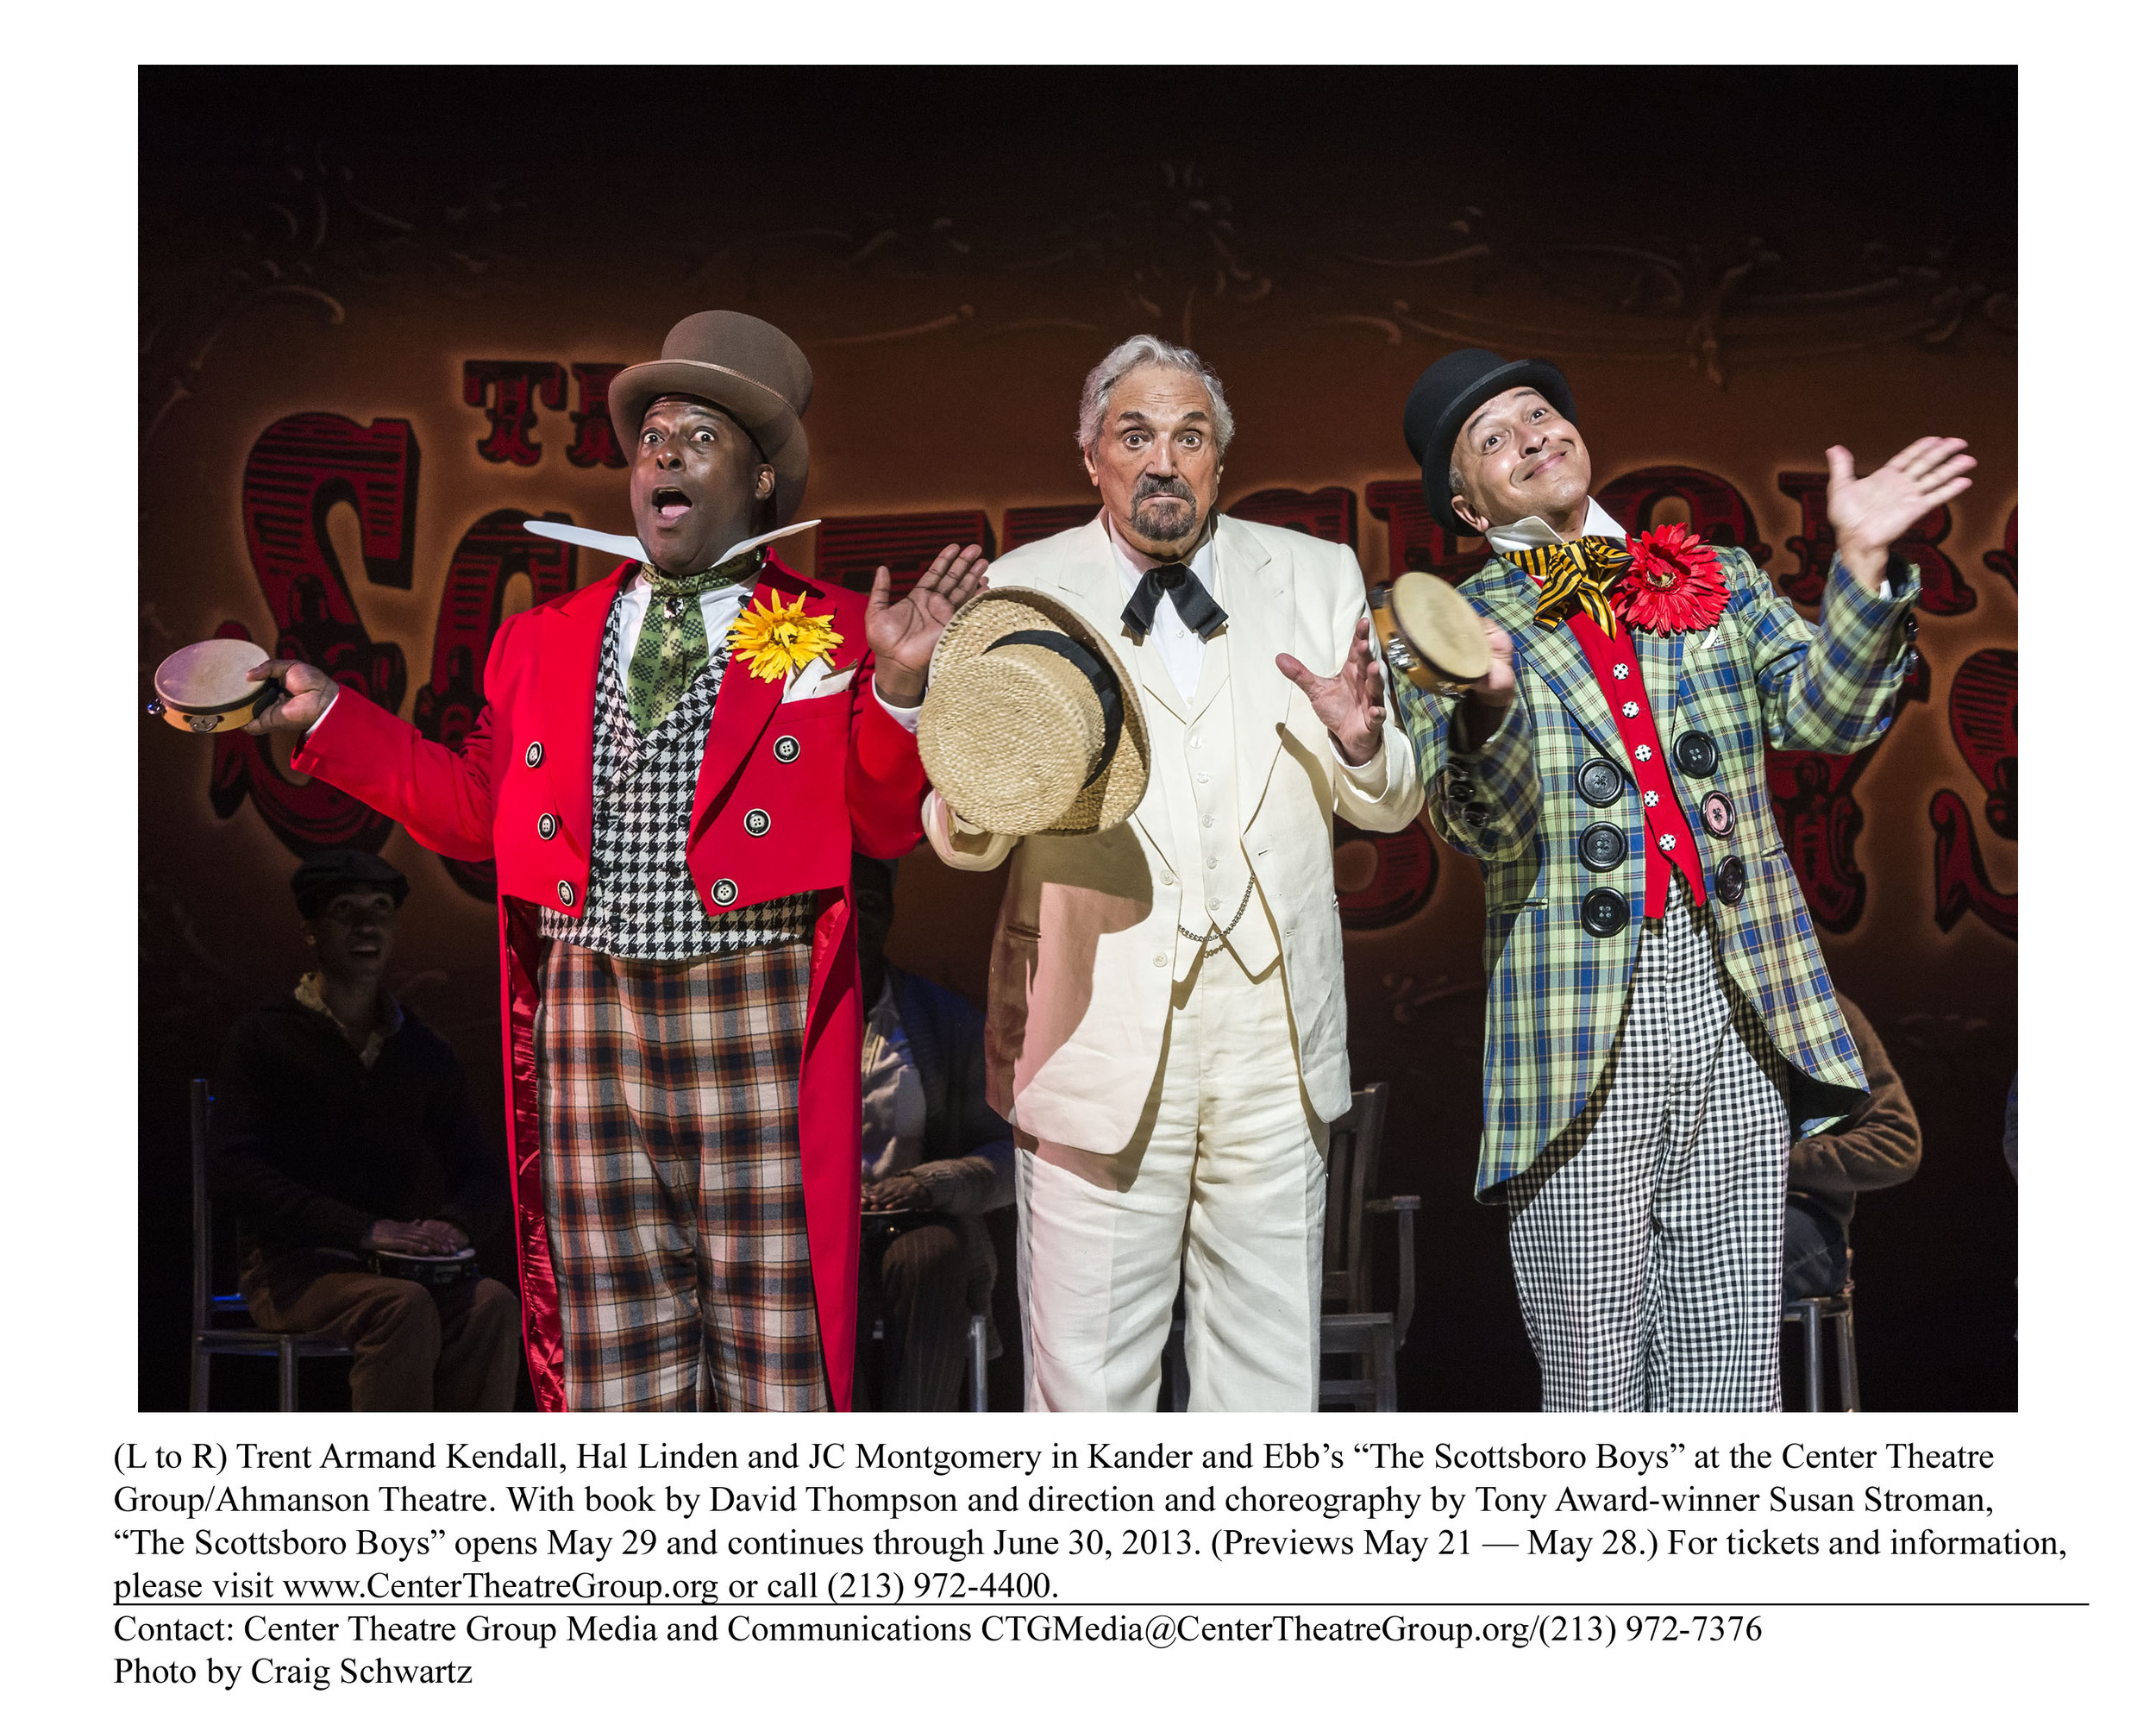 "(L to R) Trent Armand Kendall, Hal Linden and JC Montgomery in Kander and Ebb's ""The Scottsboro Boys"" at the Center Theatre Group/Ahmanson Theatre. With book by David Thompson and direction and choreography by Tony Award-winner Susan Stroman, ""The Scottsboro Boys"" opens May 29 and continues through June 30, 2013. (Previews May 21 — May 28.) For tickets and information, please visit www.CenterTheatreGroup.org or call (213) 972-4400.                                                                                               Contact: Center Theatre Group Media and Communications CTGMedia@CenterTheatreGroup.org/(213) 972-7376 Photo by Craig Schwartz"